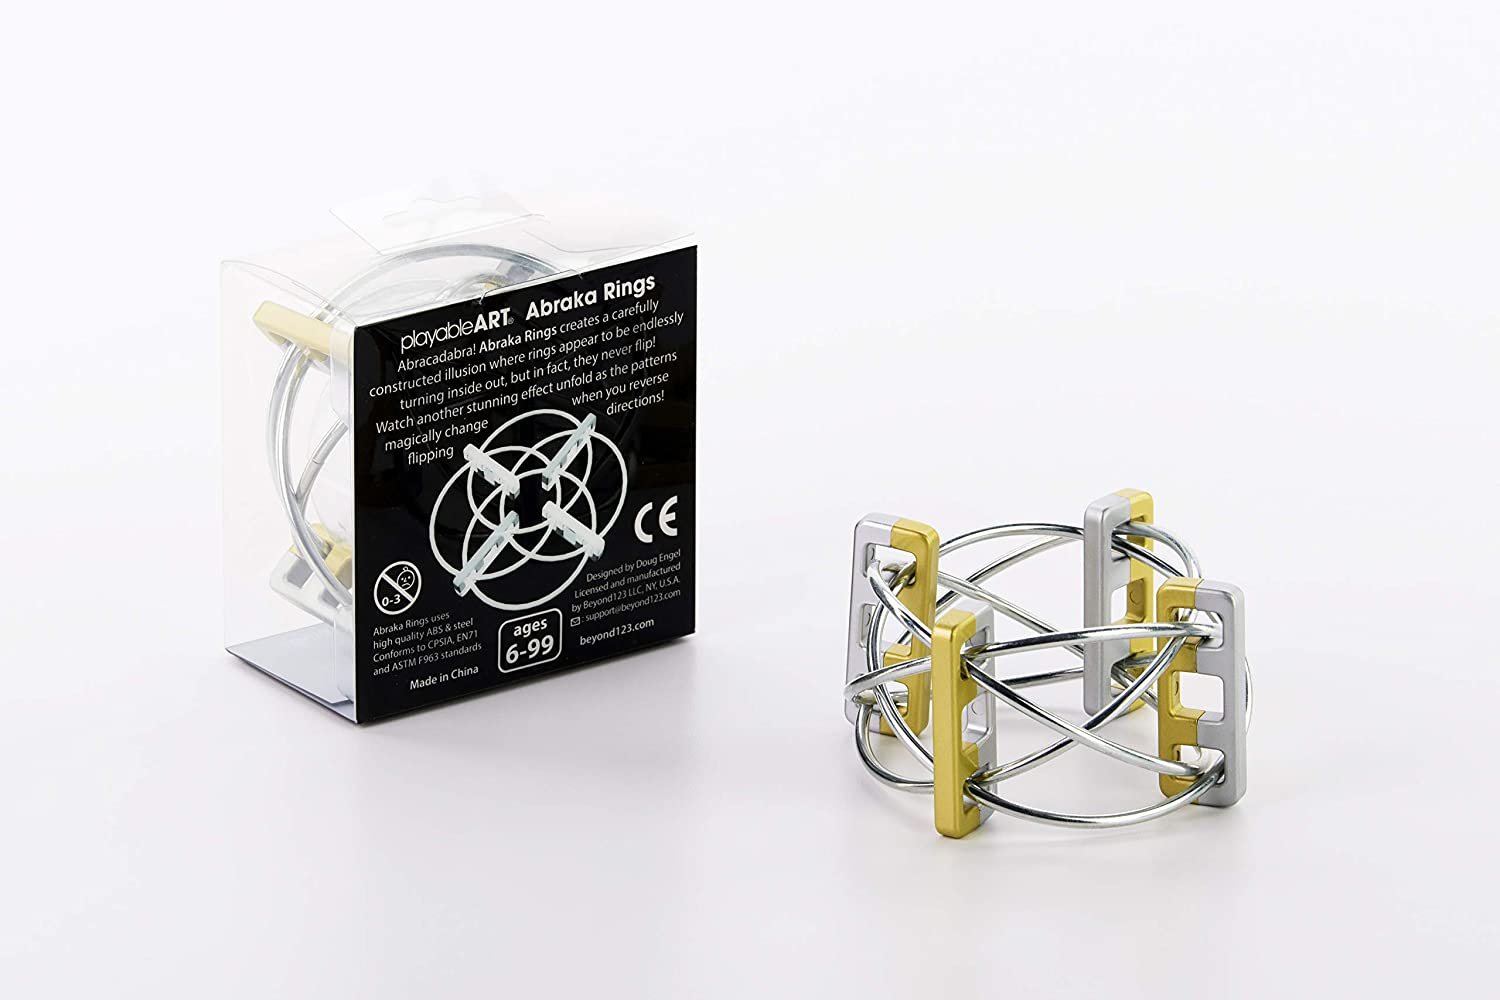 Magical Pattern Changing Desk Toy Best Fidgeting Ring Endlessly Turning Optical Illusion Gold//Silver Playable Art Abraka Rings